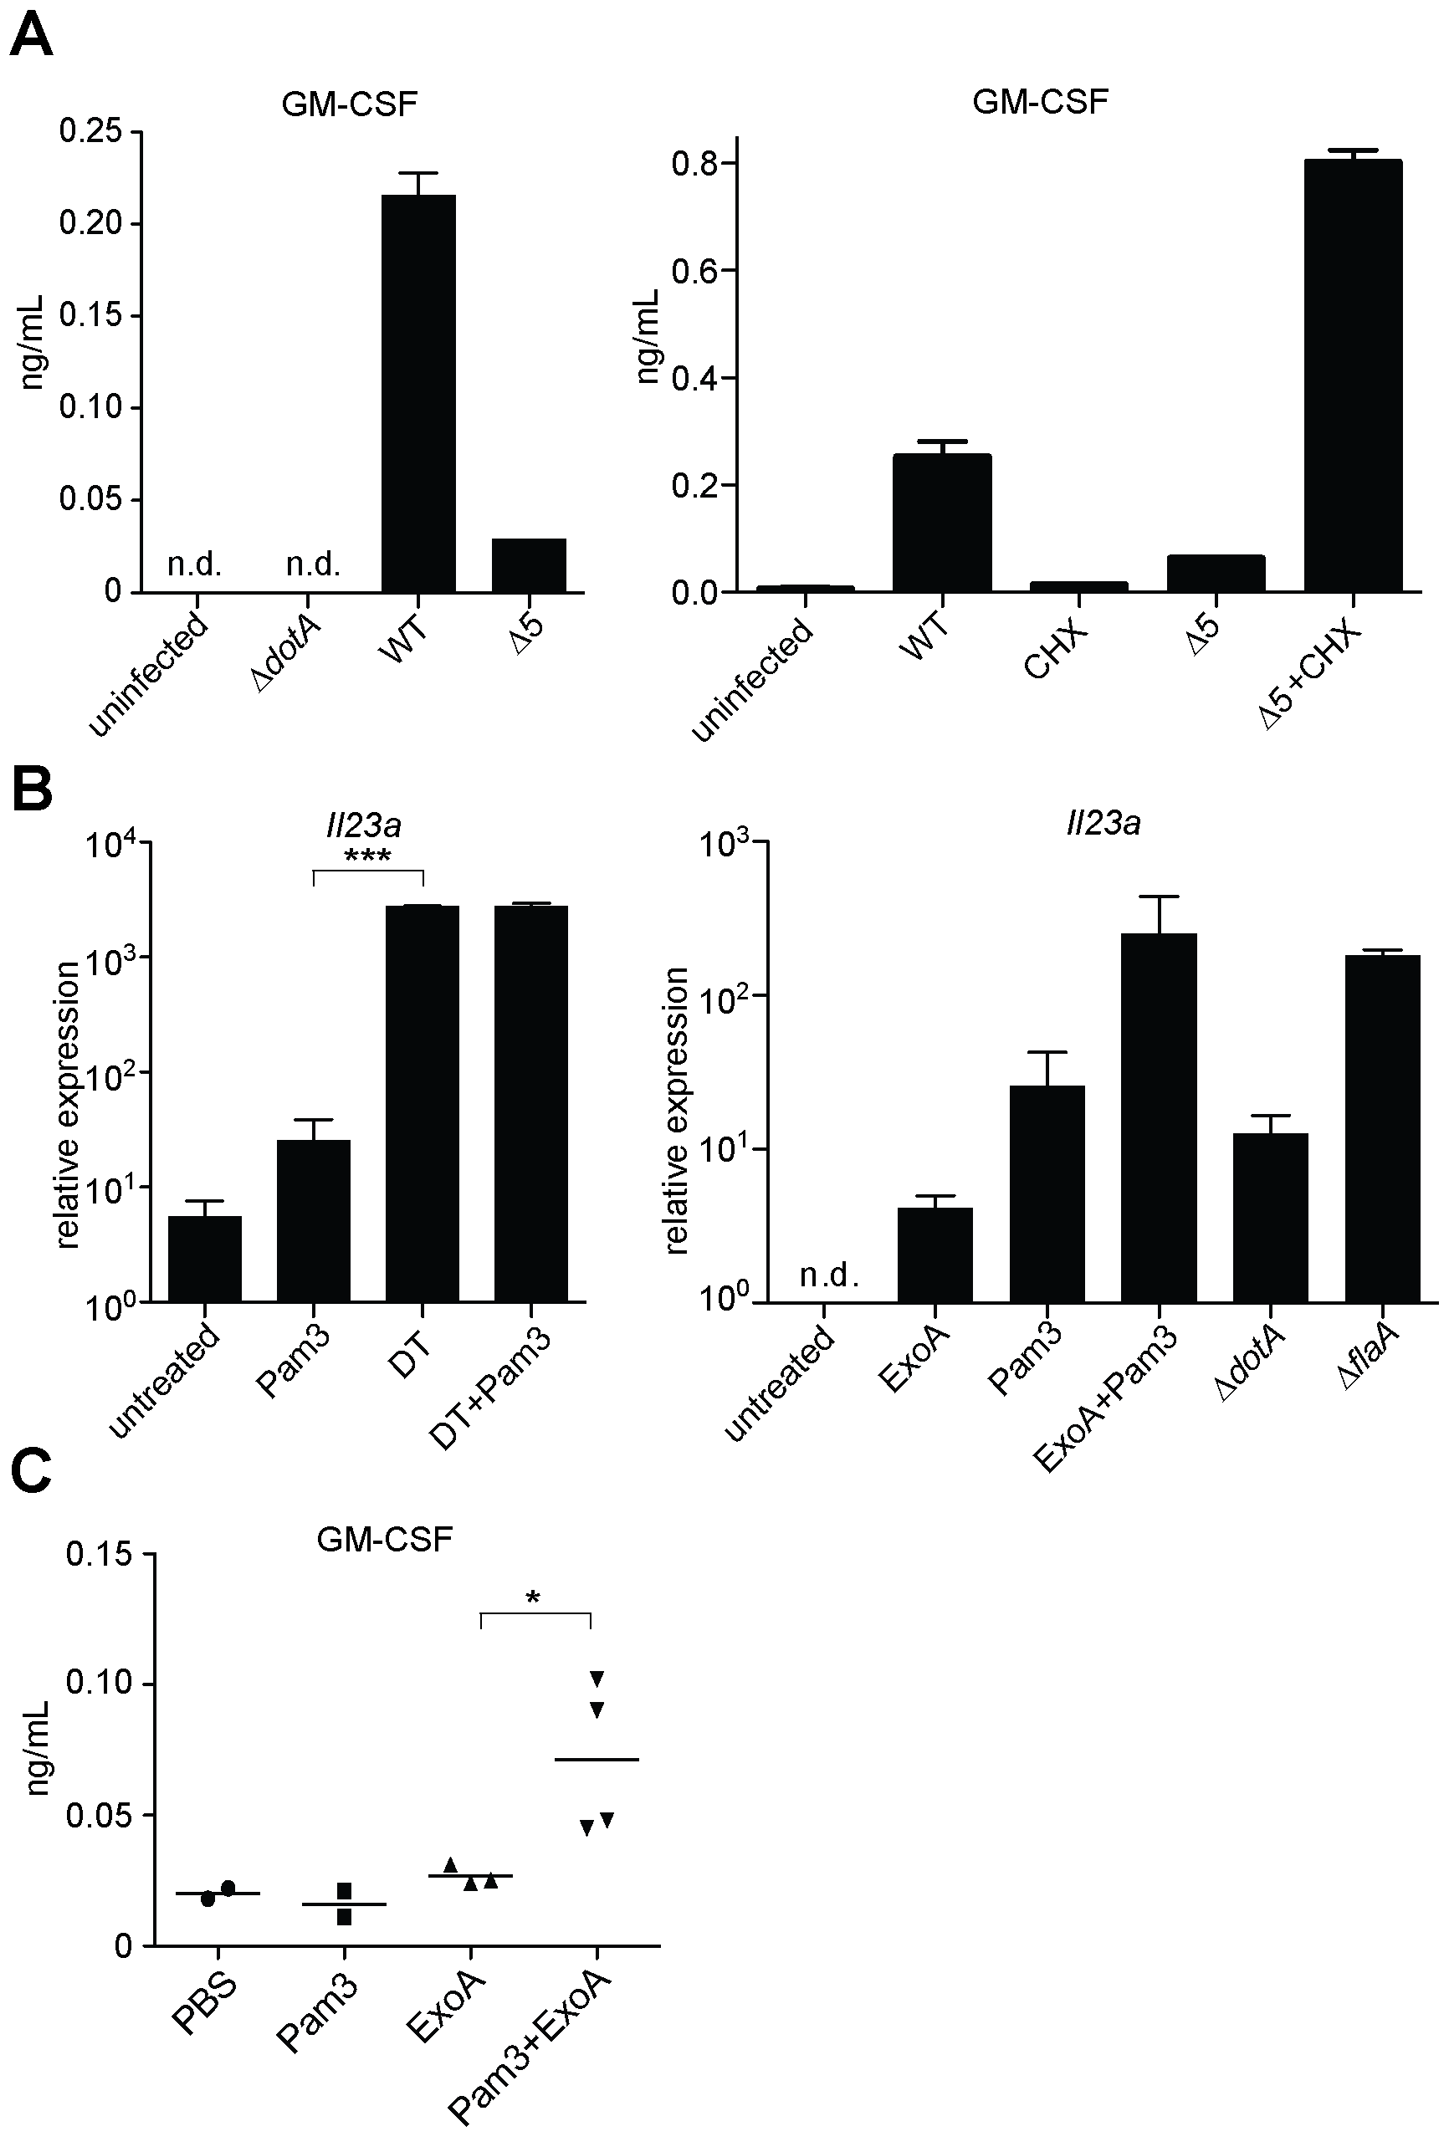 Inhibition of host translation by multiple bacterial toxins provokes an inflammatory cytokine response <i>in vitro</i> and <i>in vivo</i>.